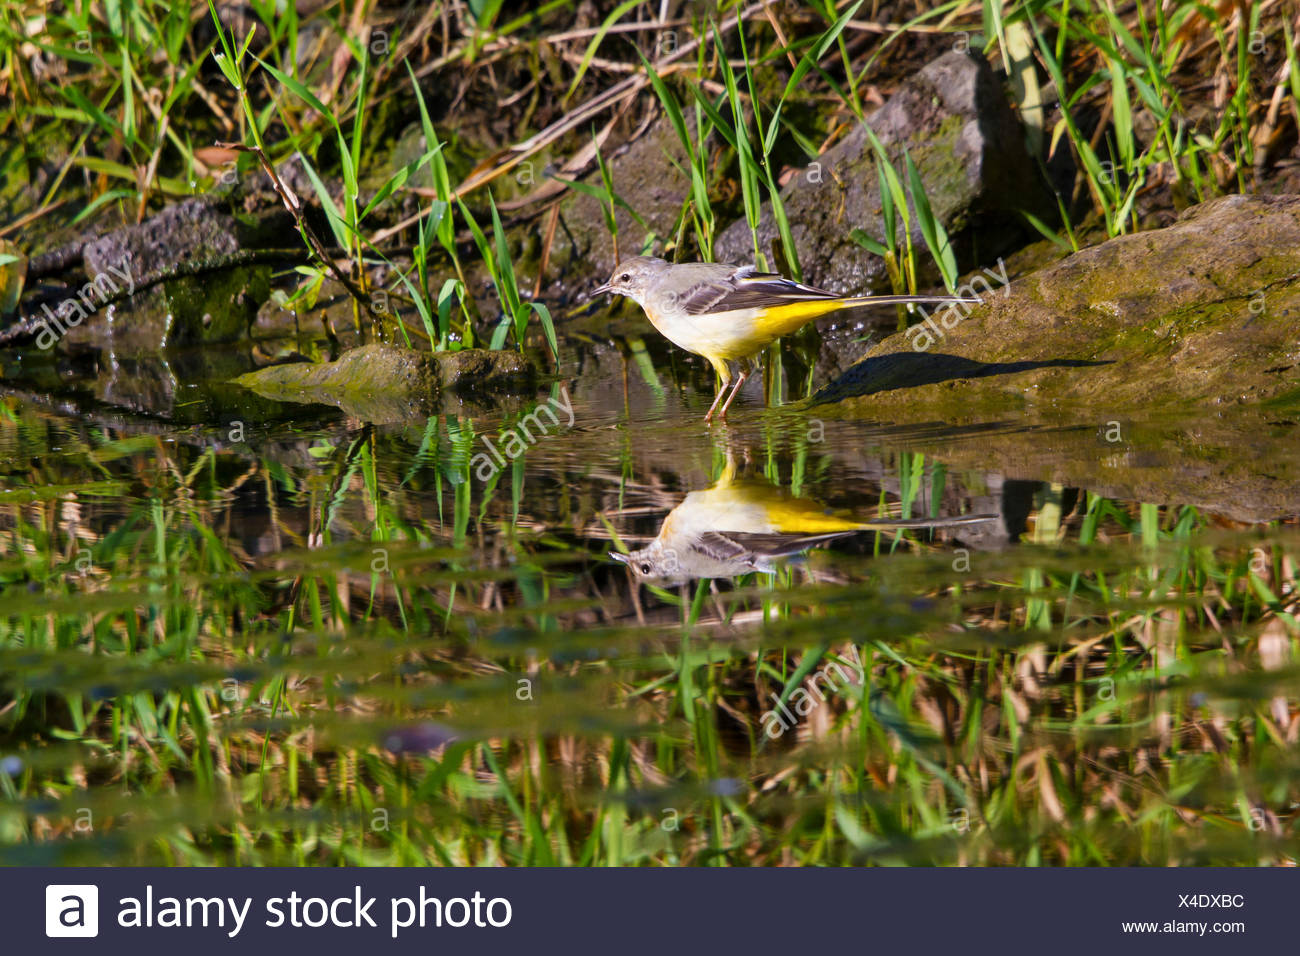 grey wagtail (Motacilla cinerea), on the feed, mirroring on water surface, Switzerland, Lake Constance - Stock Image